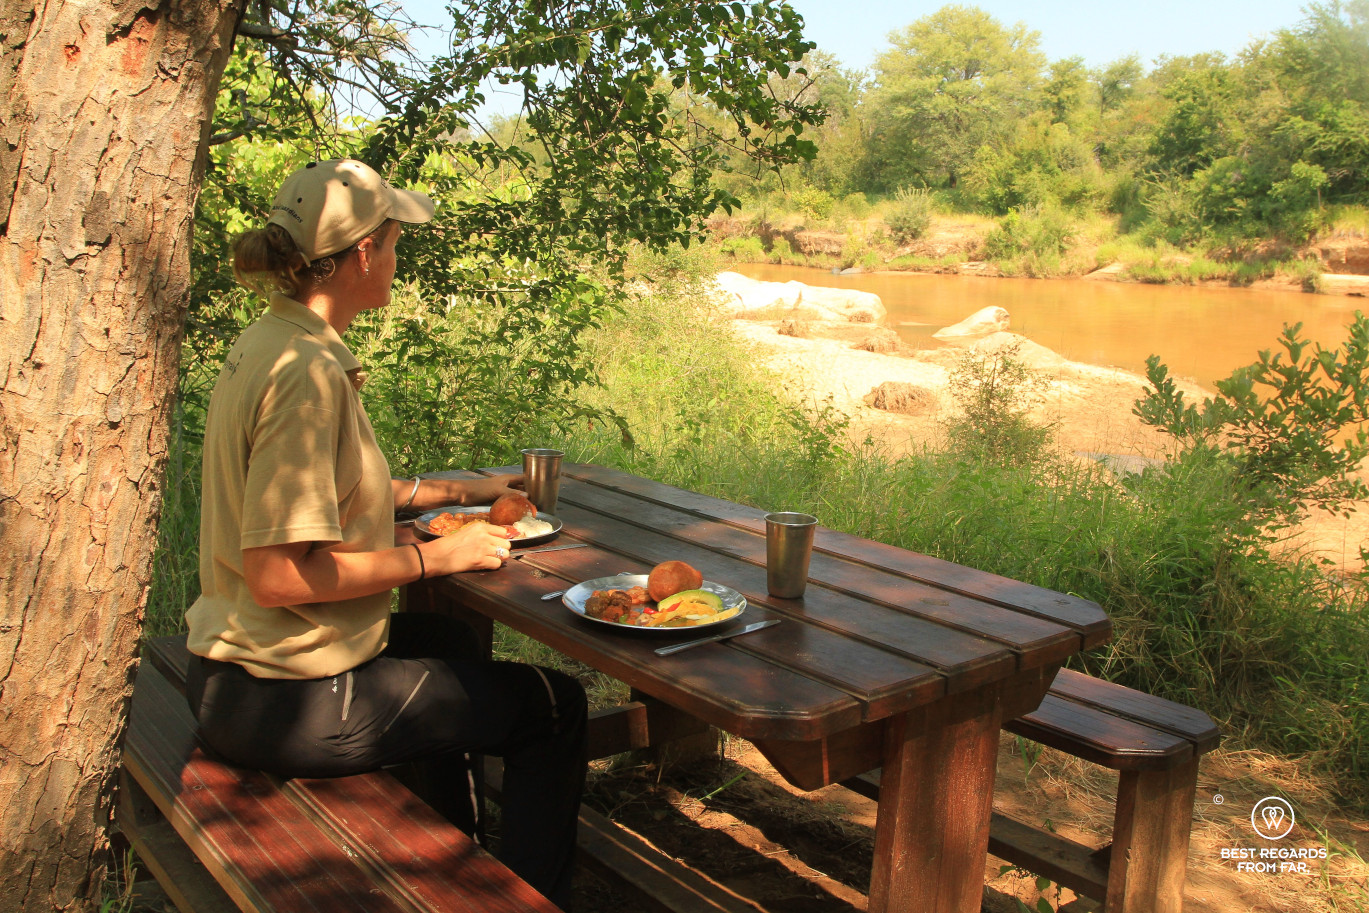 Person having lunch on a picnic table in bush camp overlooking the Selati River, South Africa